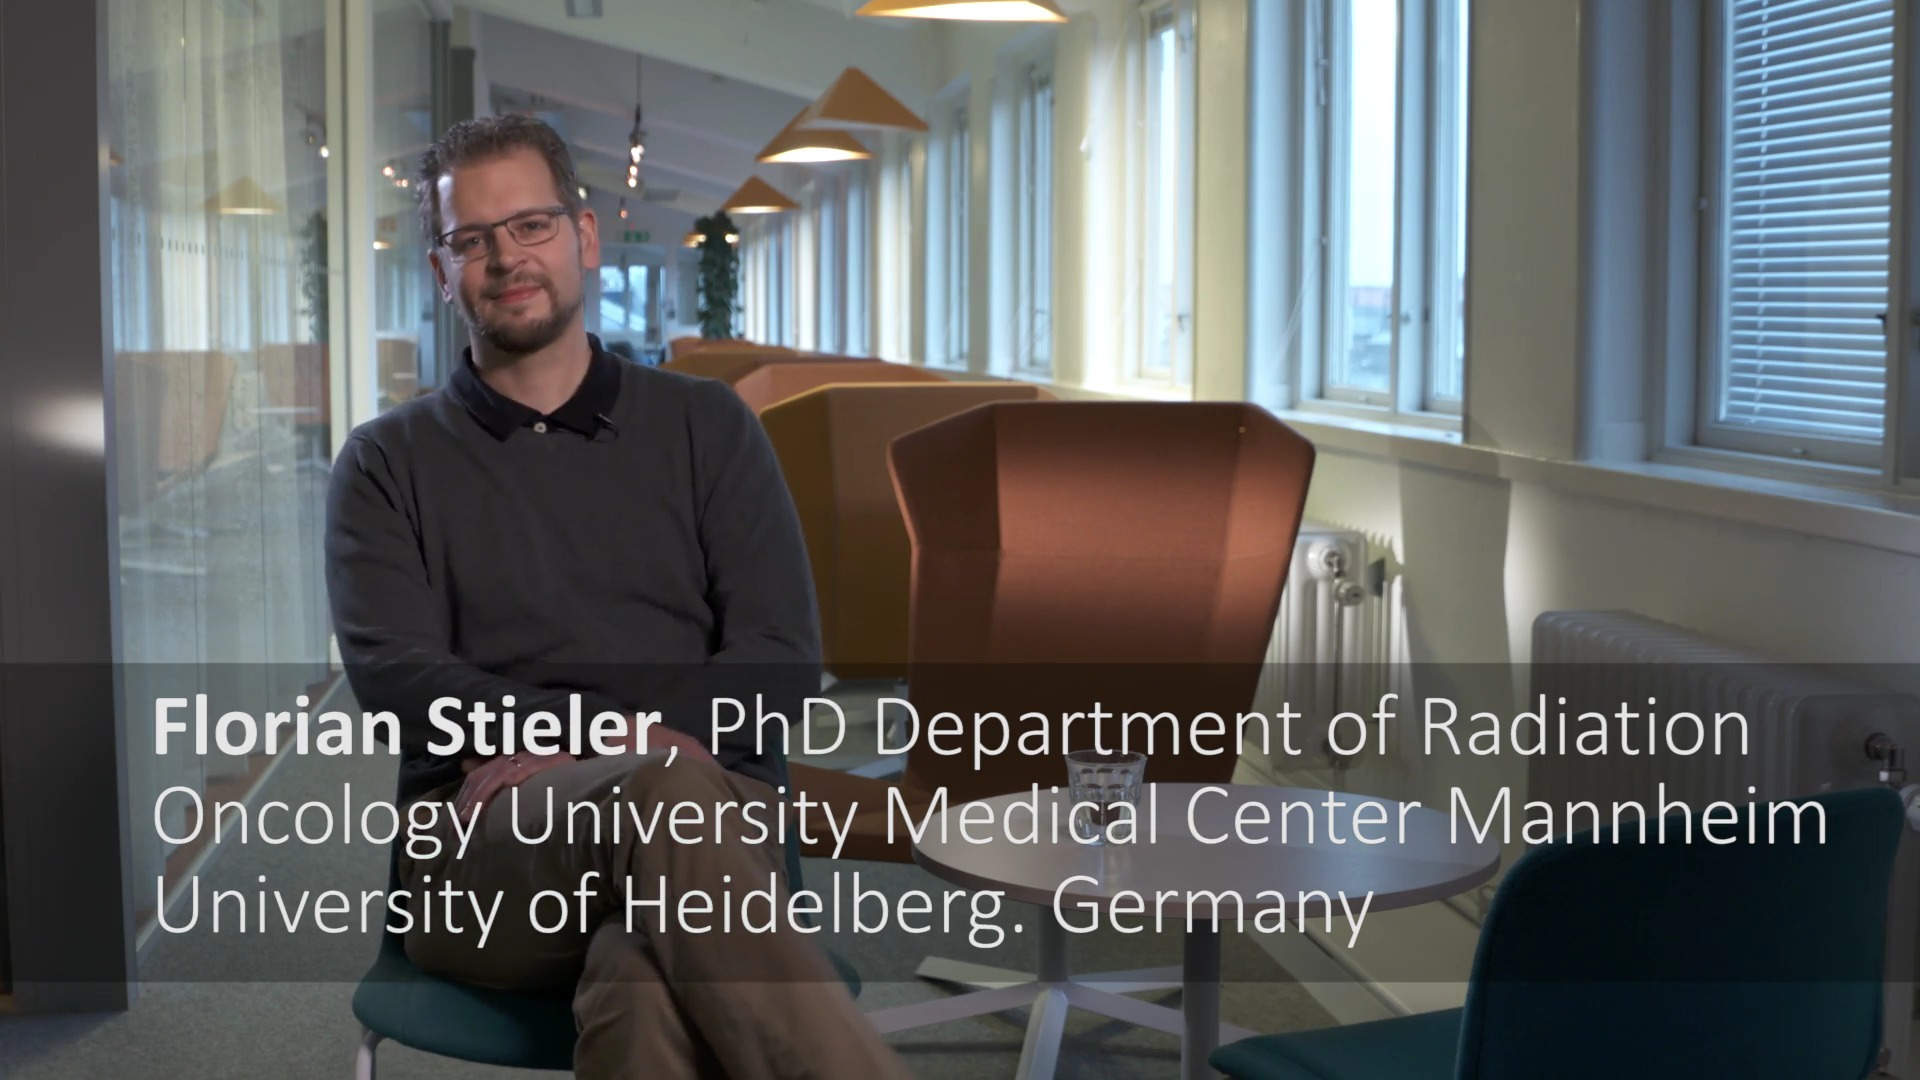 Cranial SRS with Icon - Florian Stieler